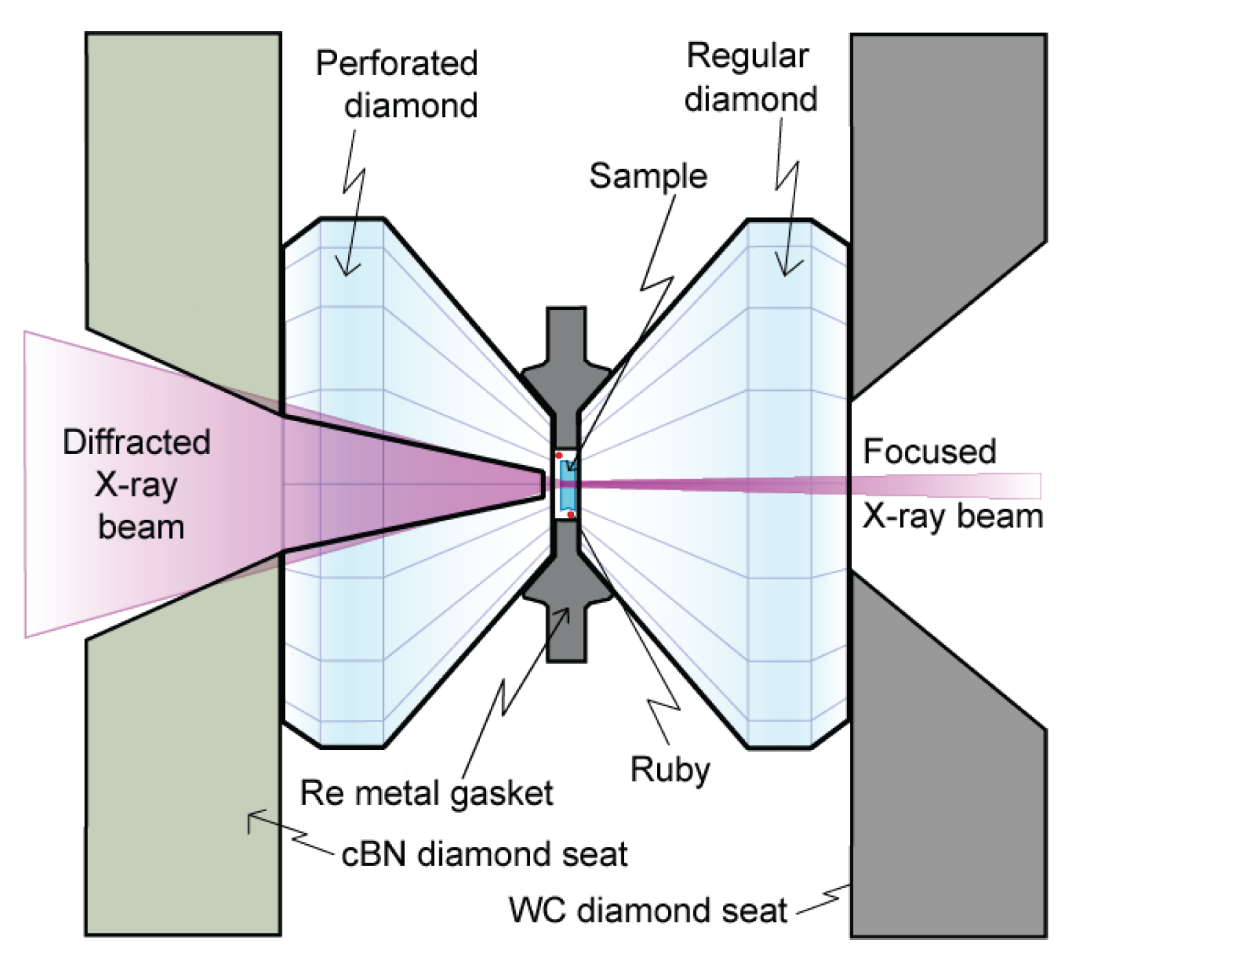 The Components of a Typical DAC Experiment